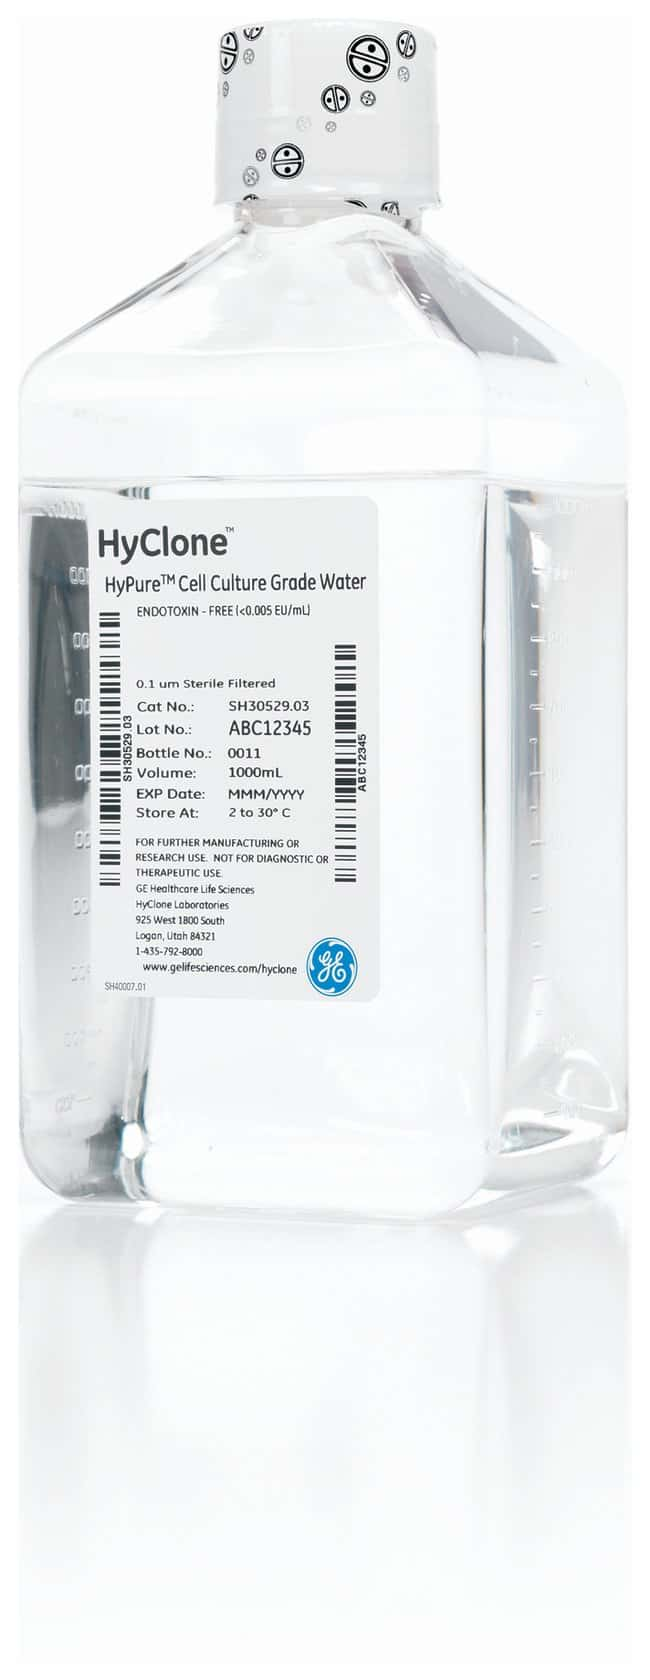 HyClone™ Water, Cell Culture Grade (Endotoxin-Free) 1000mL; Cell Culture Grade Water HyClone™ Water, Cell Culture Grade (Endotoxin-Free)